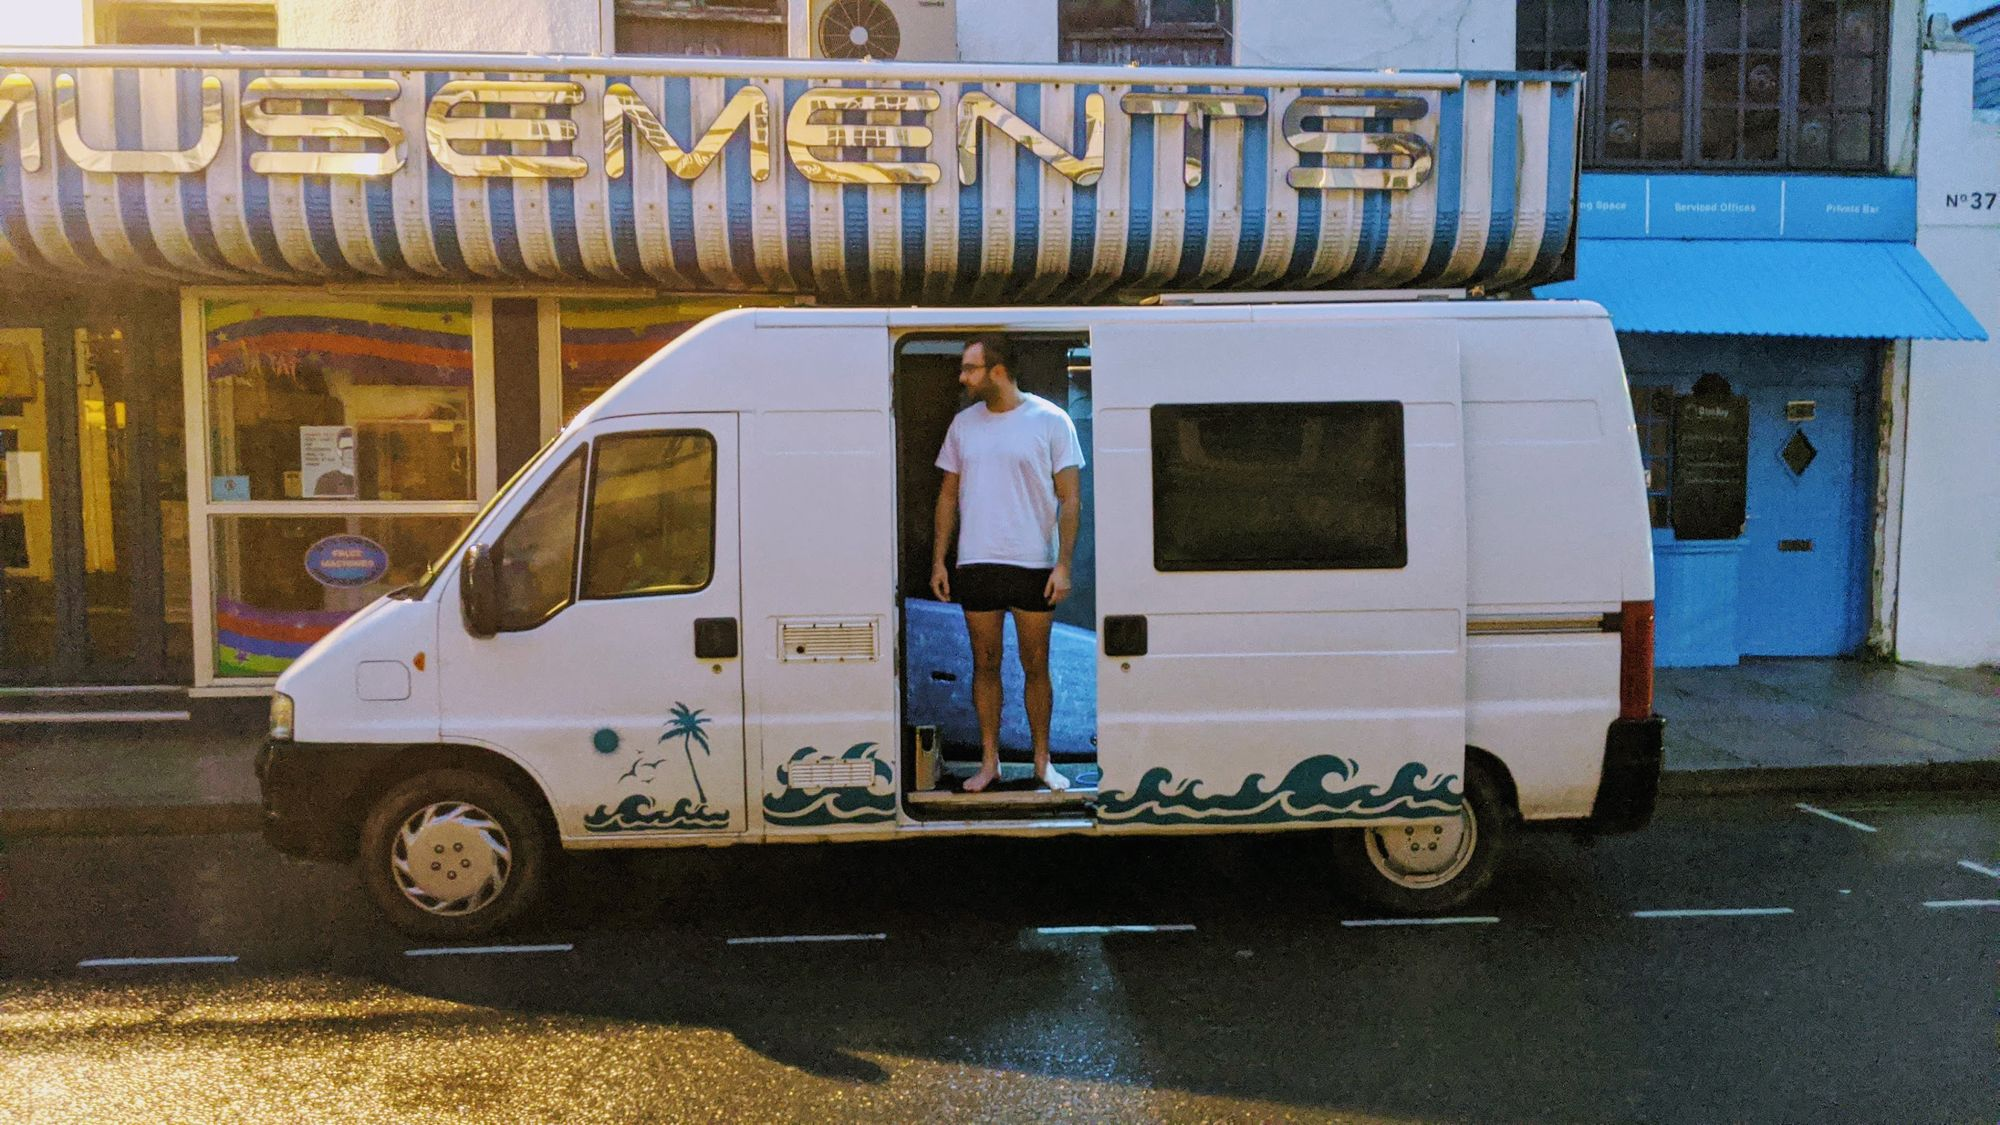 Running a startup from a camper van